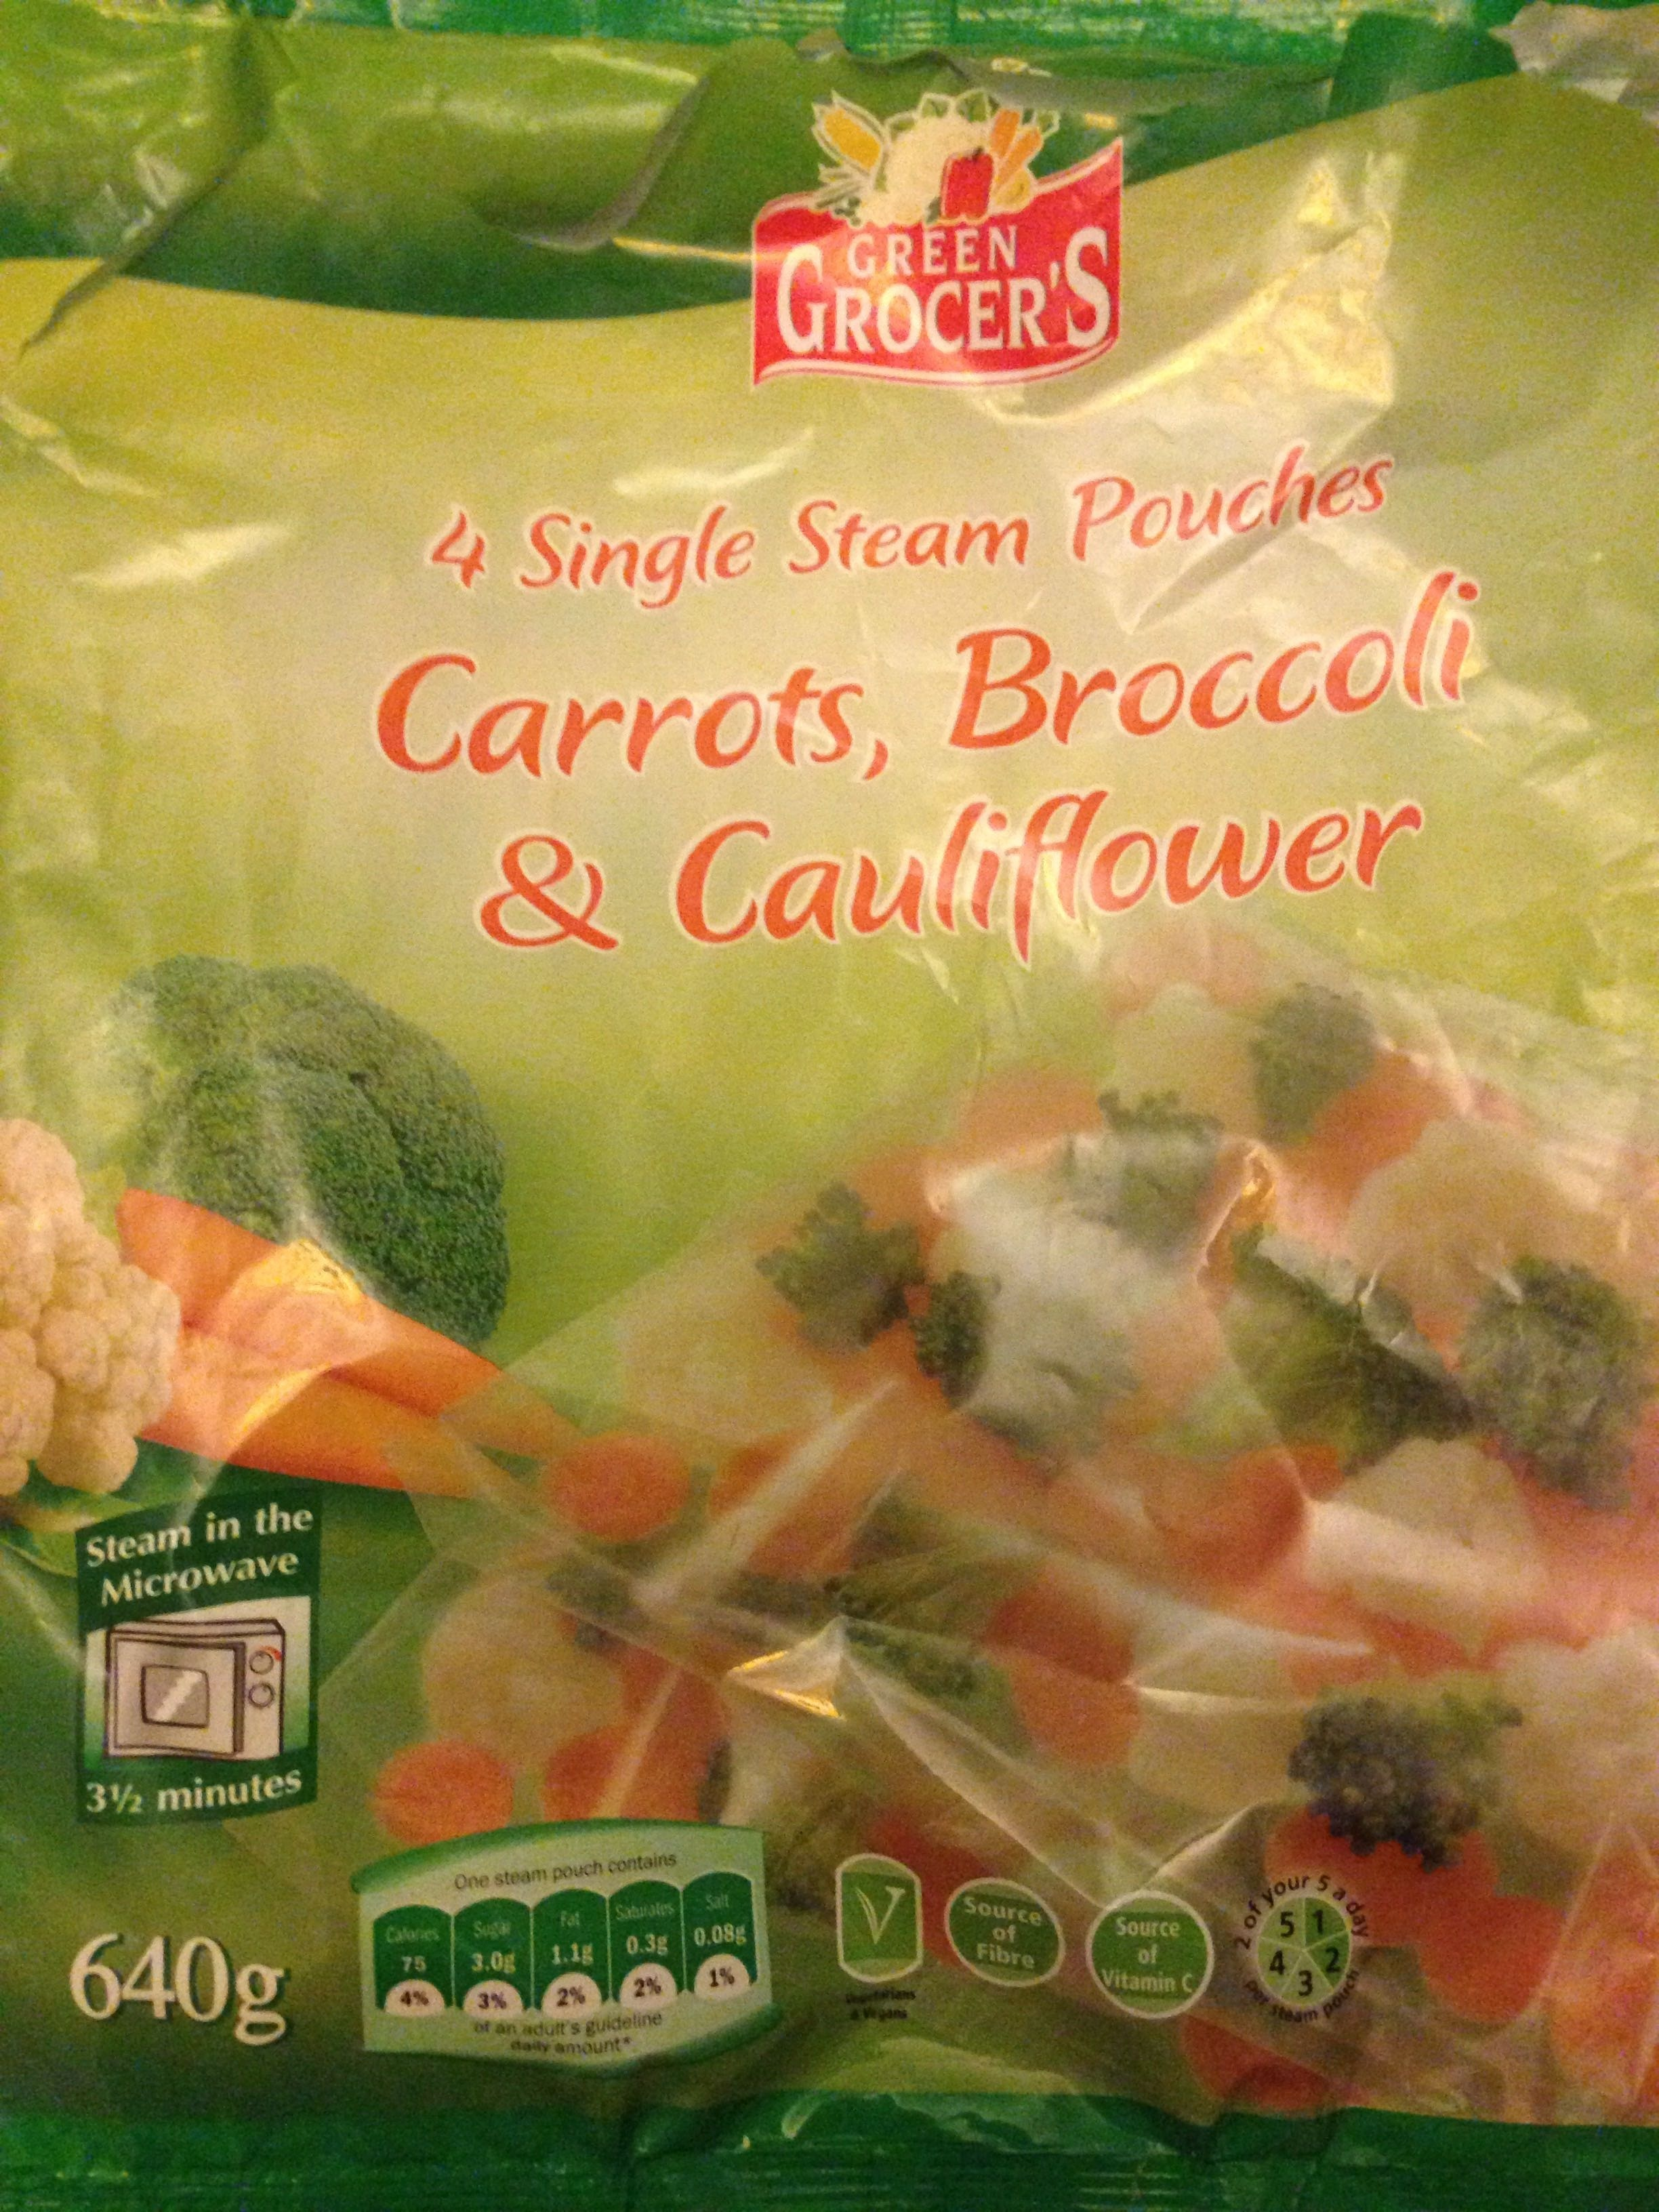 Carrots, Broccoli & Cauliflower - Product